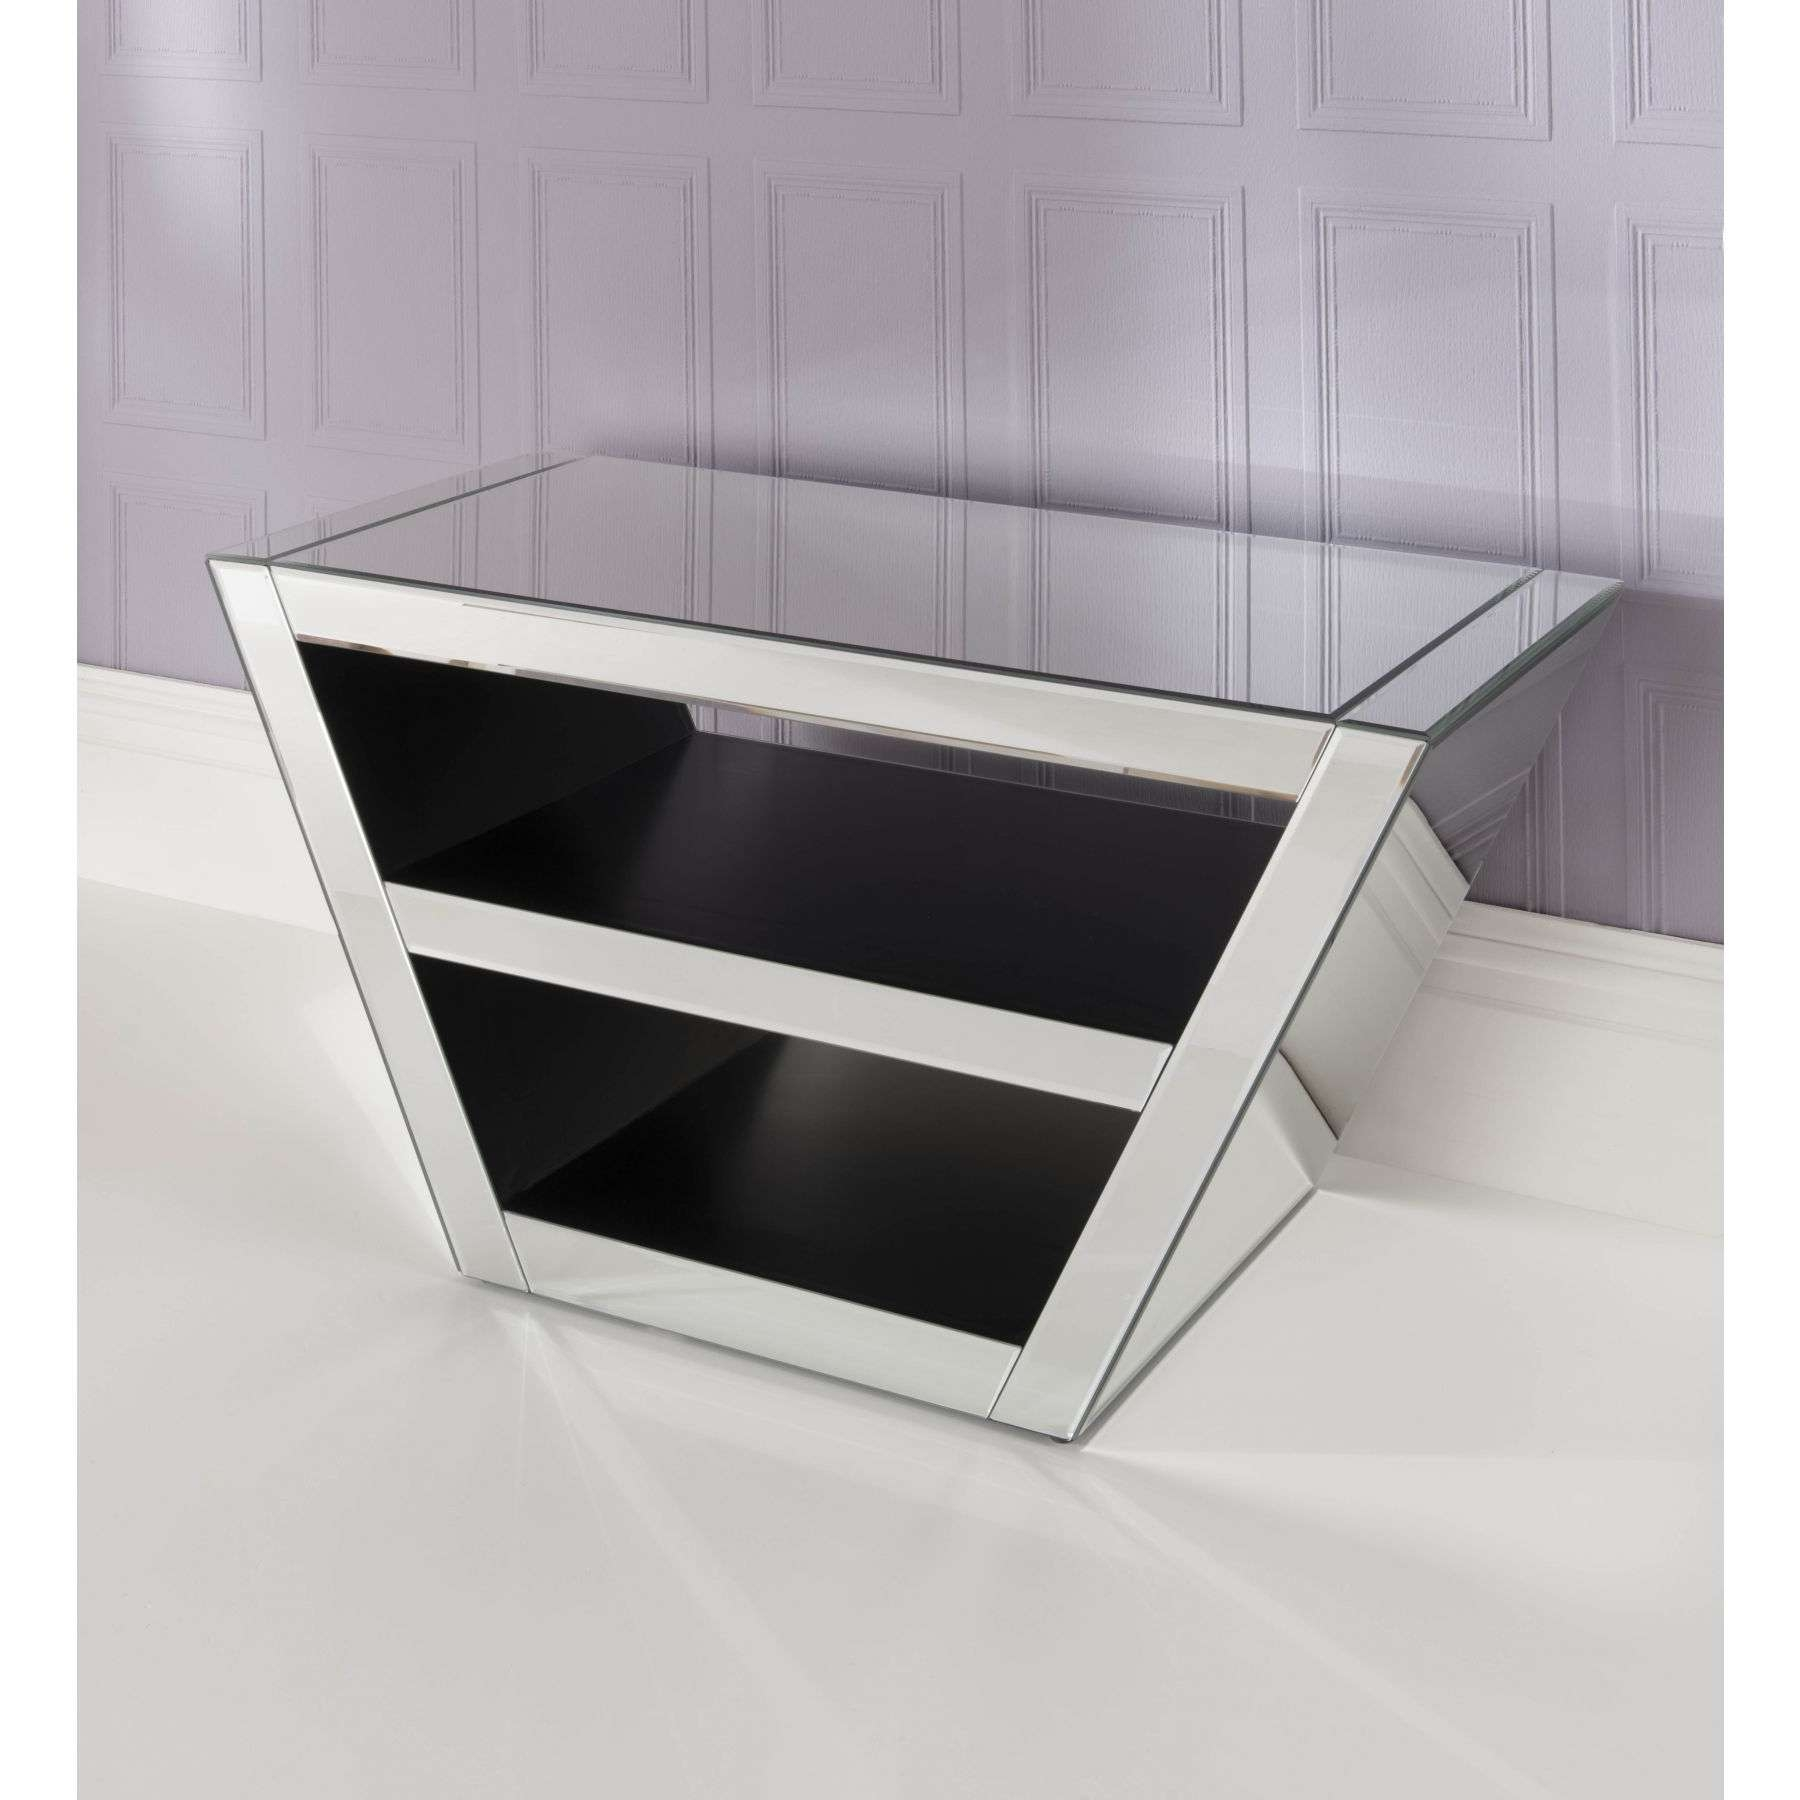 Mirrored Tv Cabinet | Venetian Glass Tv Stand | Homesdirect365 Pertaining To Glass Tv Cabinets (View 13 of 20)